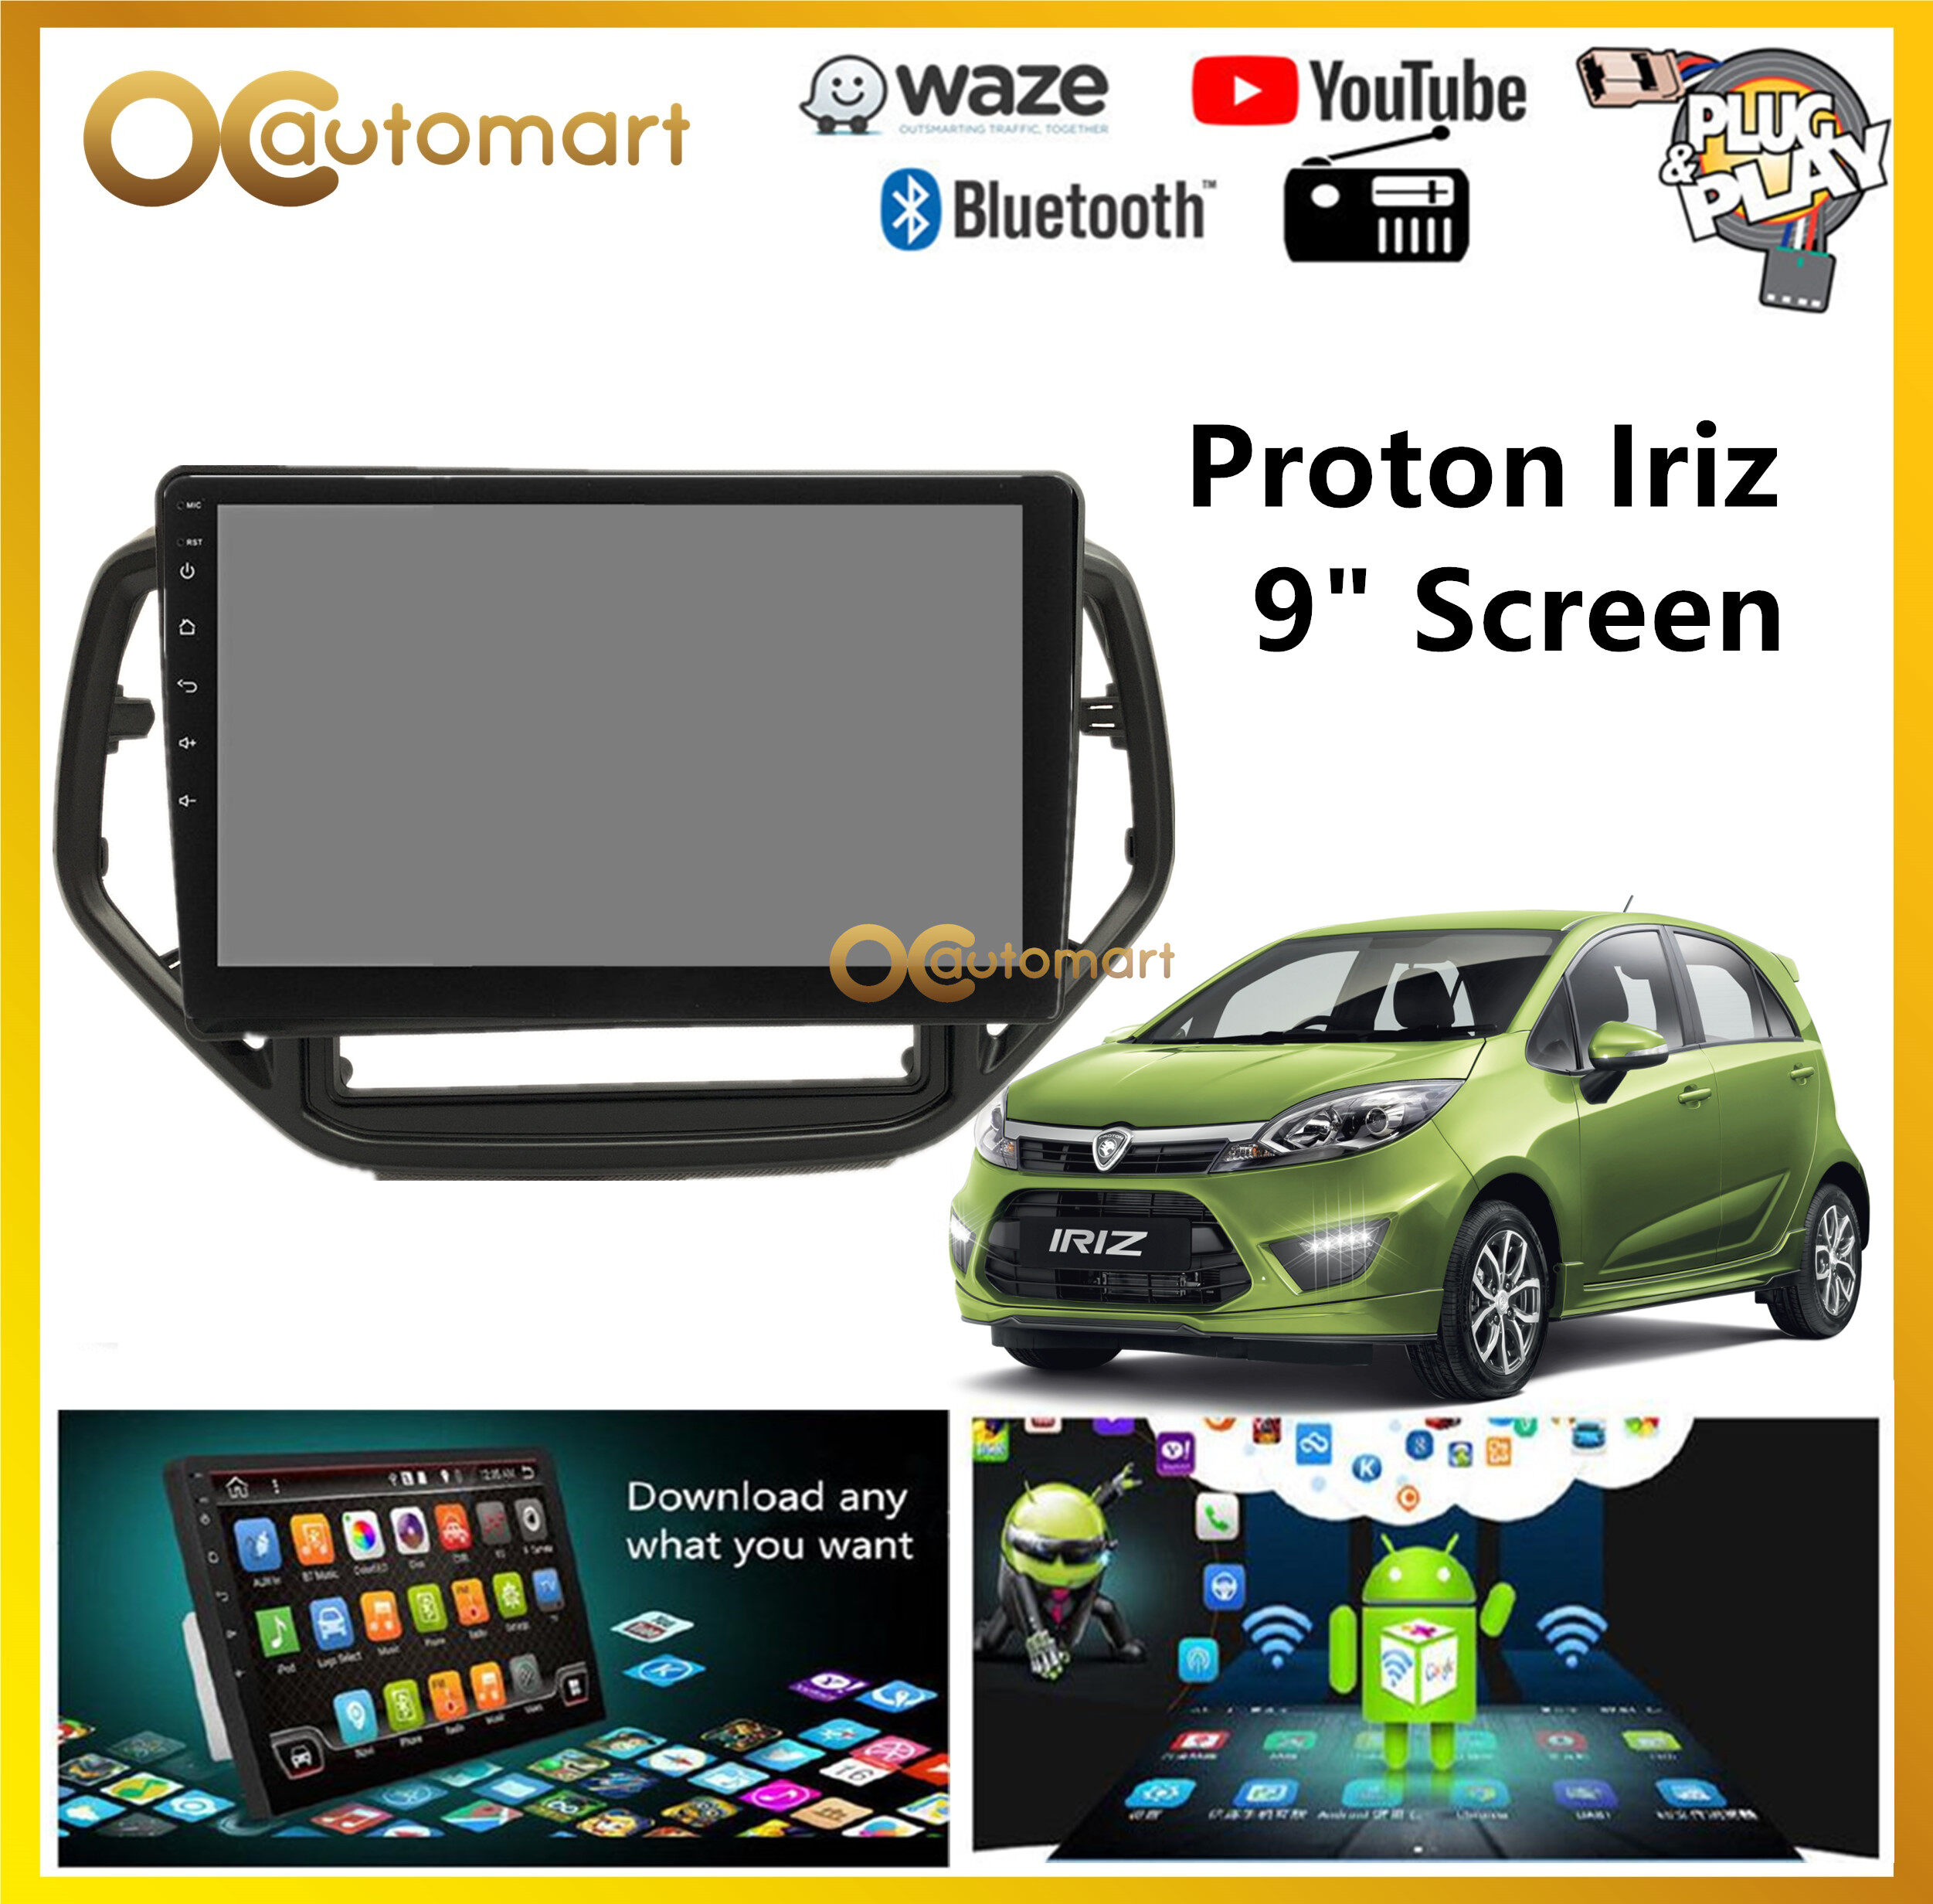 Proton Iriz Big Screen 9  Plug and Play OEM Android Player Car Stereo With WIFI Video Player/TouchScreen